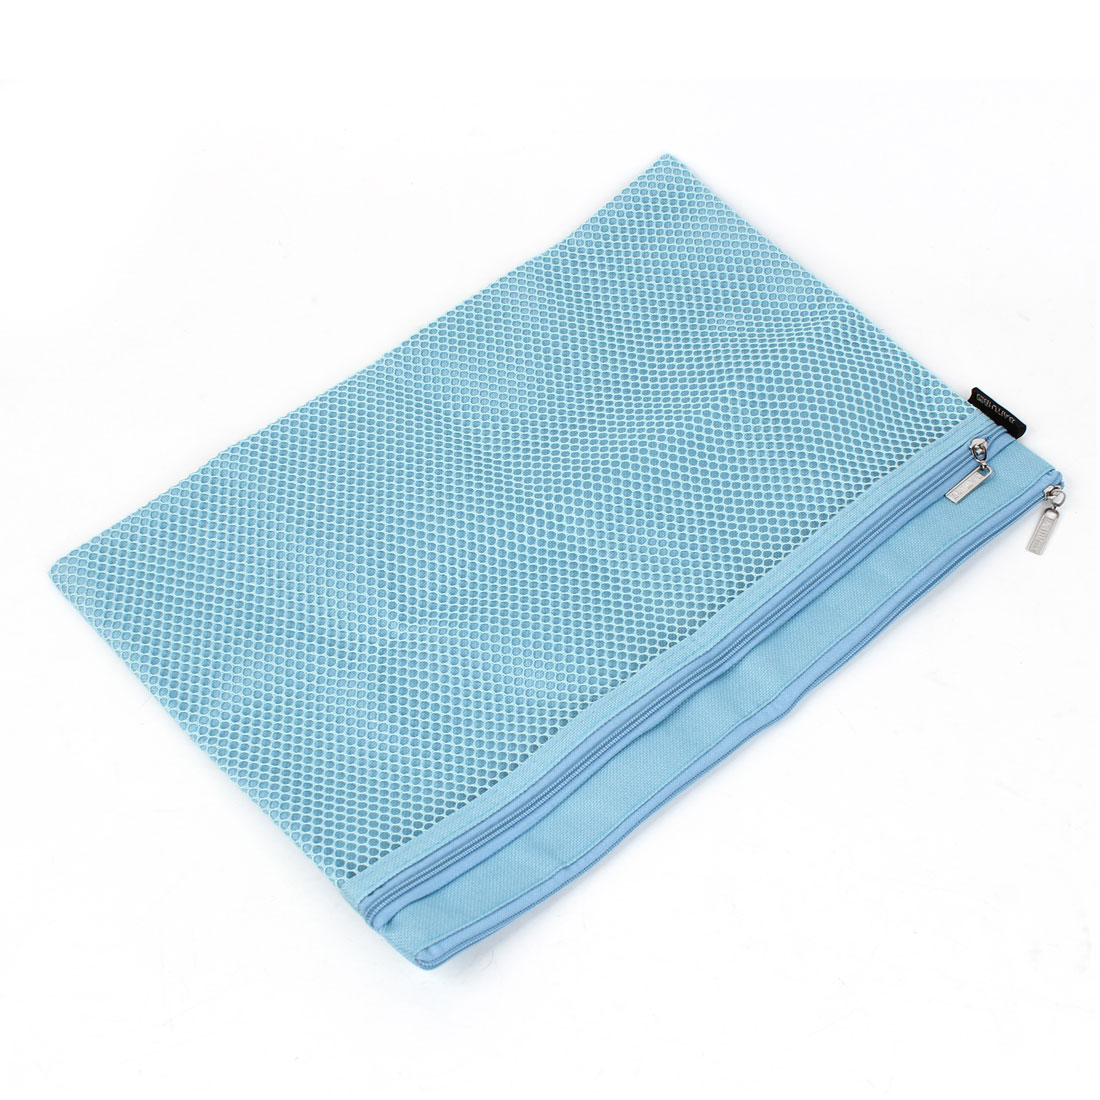 Blue Nylon Net Pattern Zipper Closure A4 Paper Document Files Organizer Bag